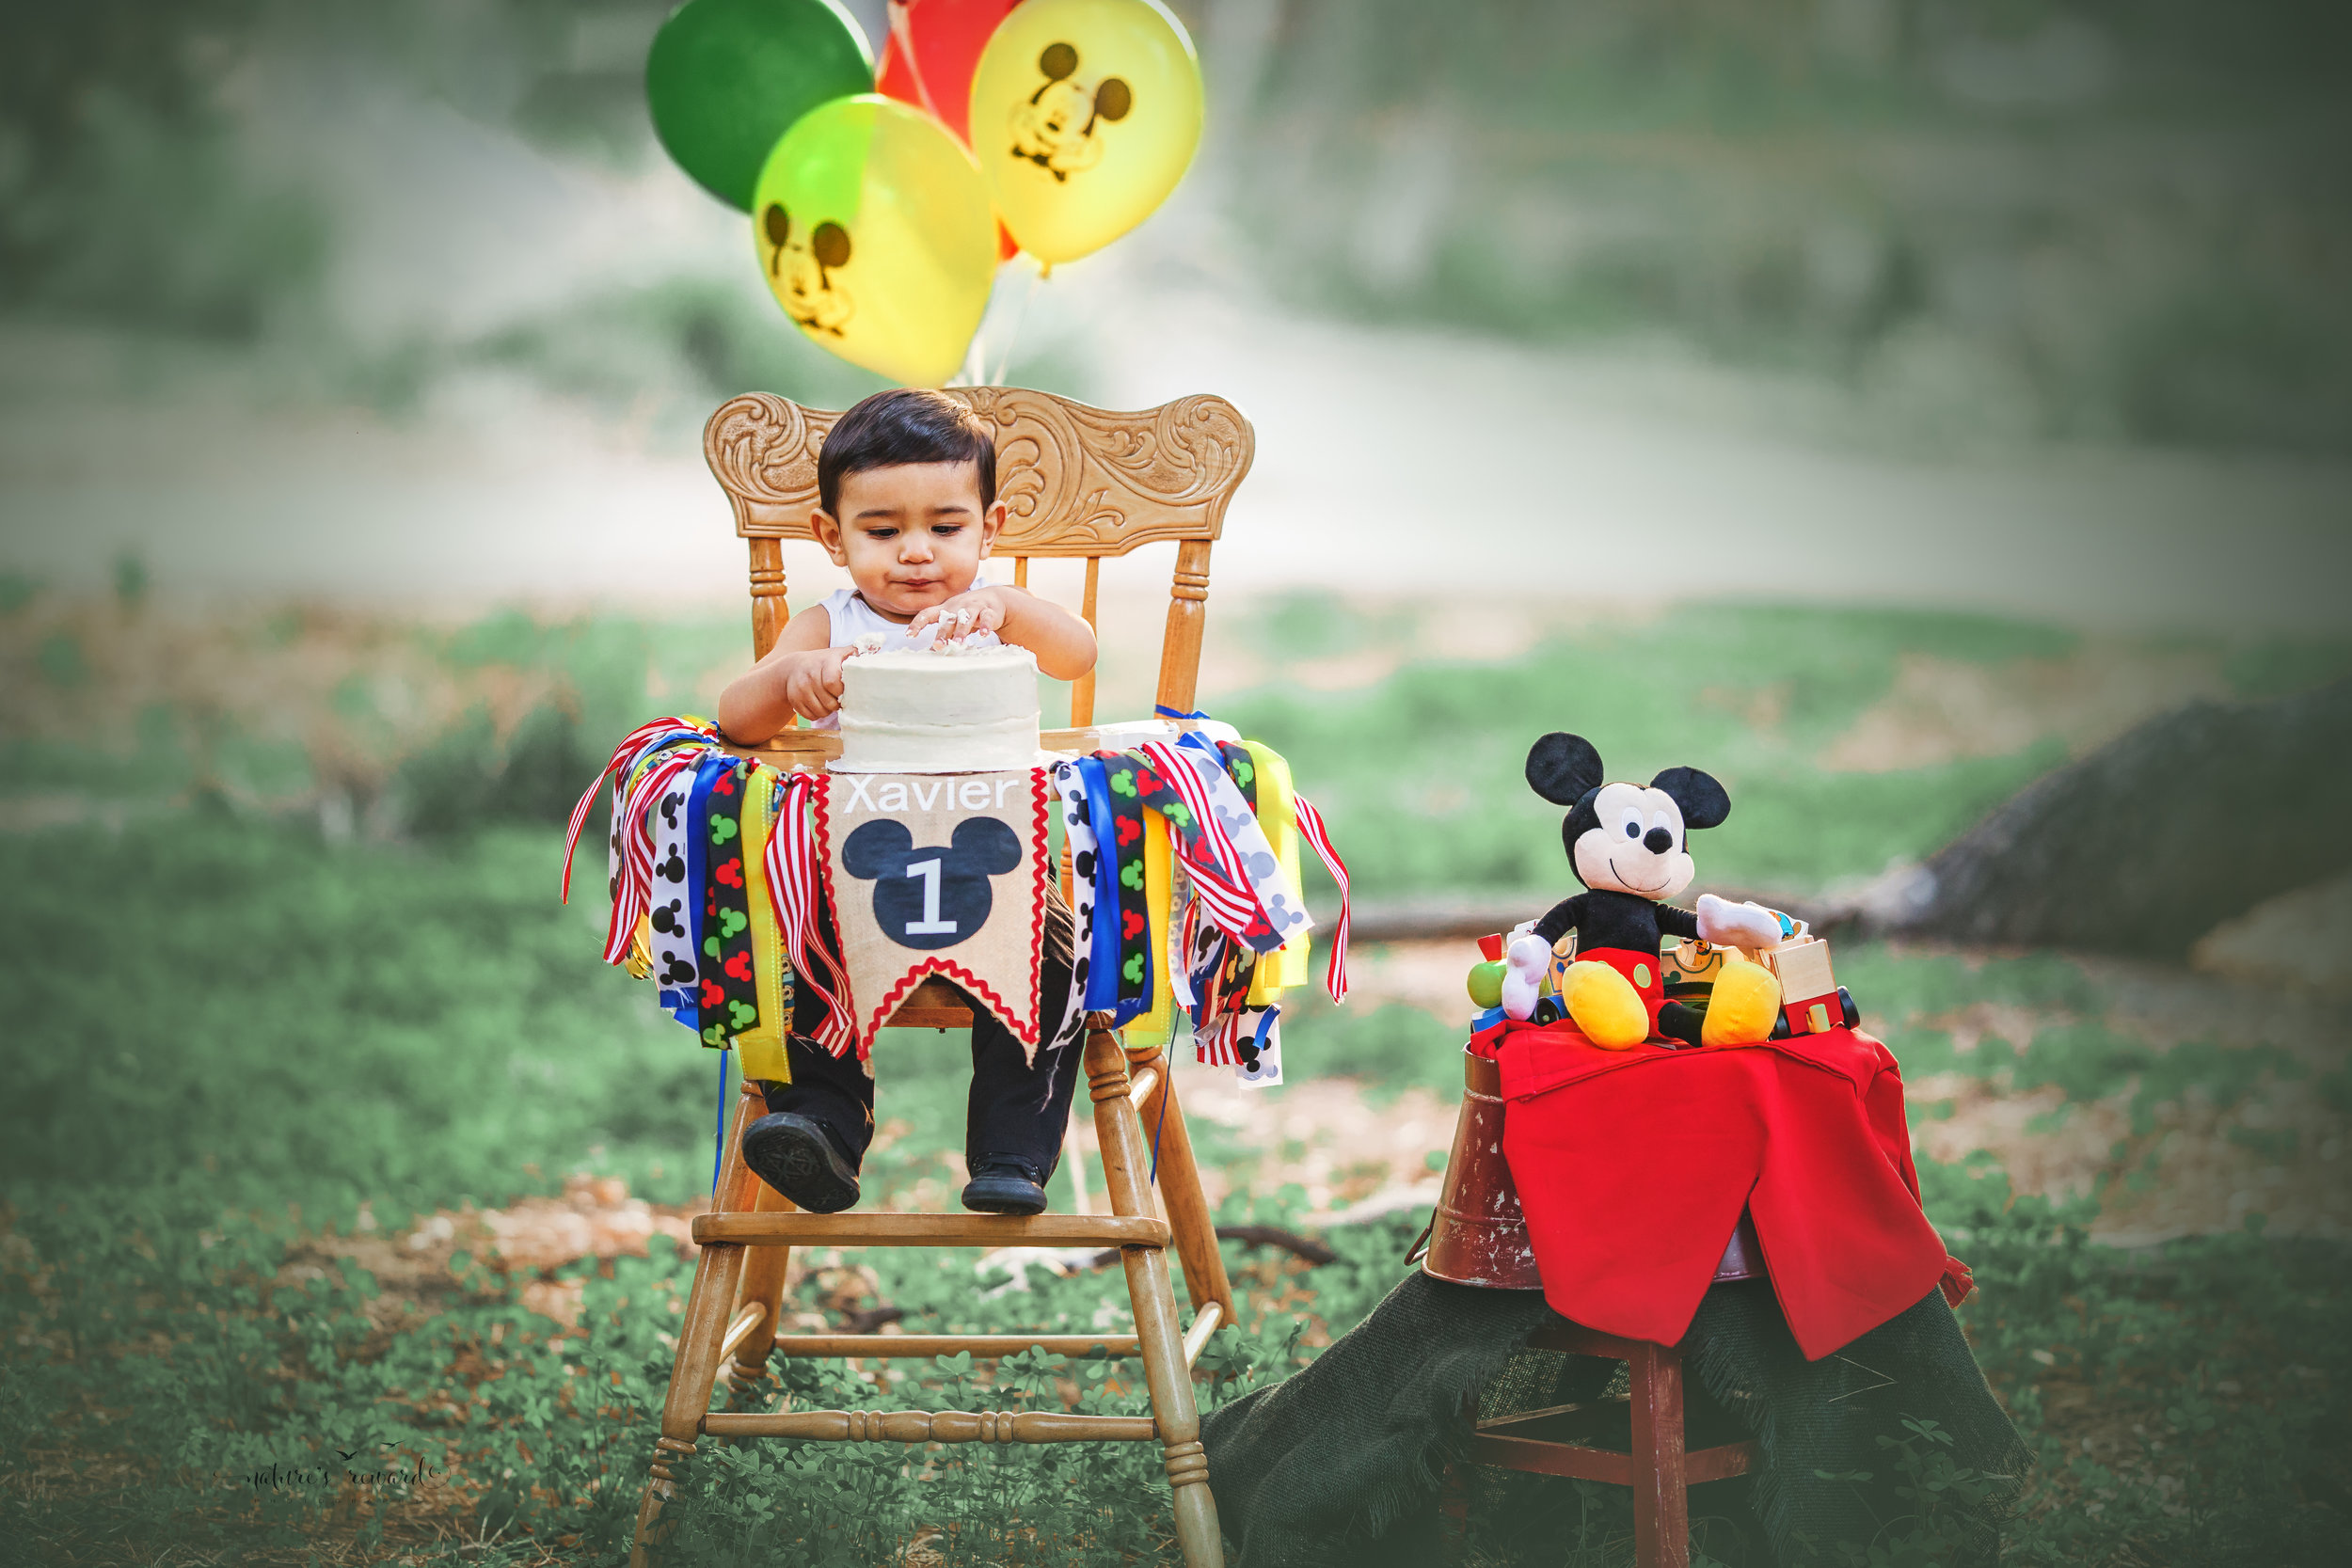 Celebrating his first birthday with Disney's Toodles in this portrait by Nature's Reward Photography